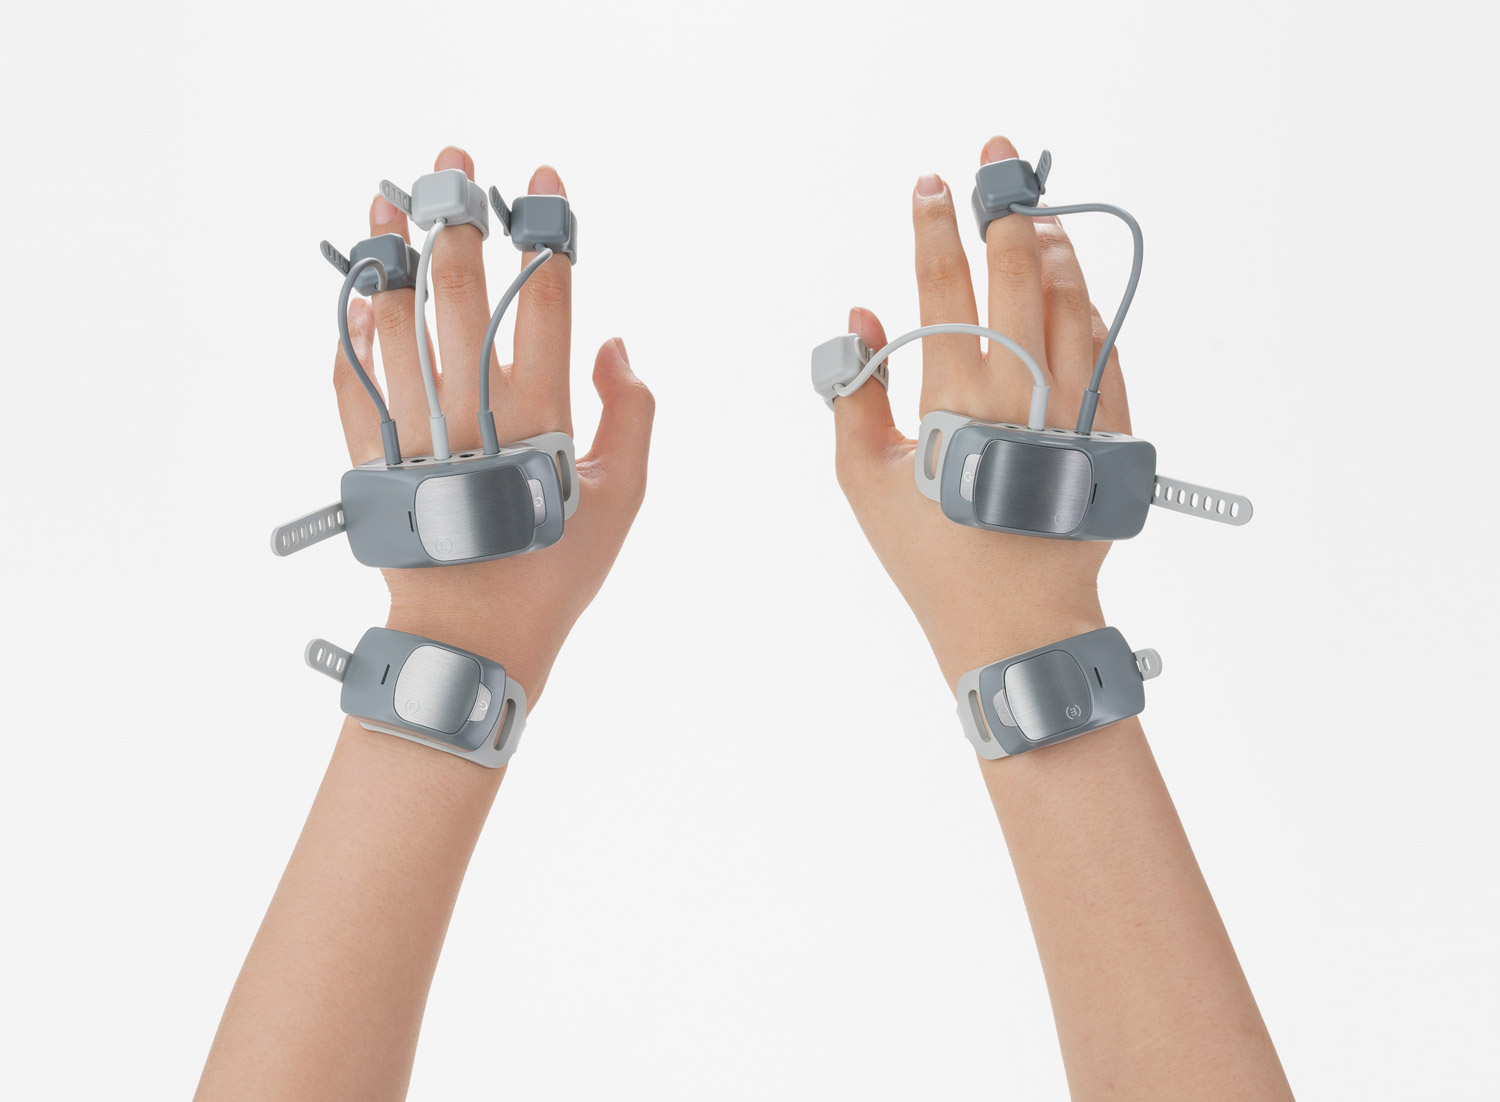 Manovivo is a wearable smart glove designed to monitor and train the impaired hand in daily life